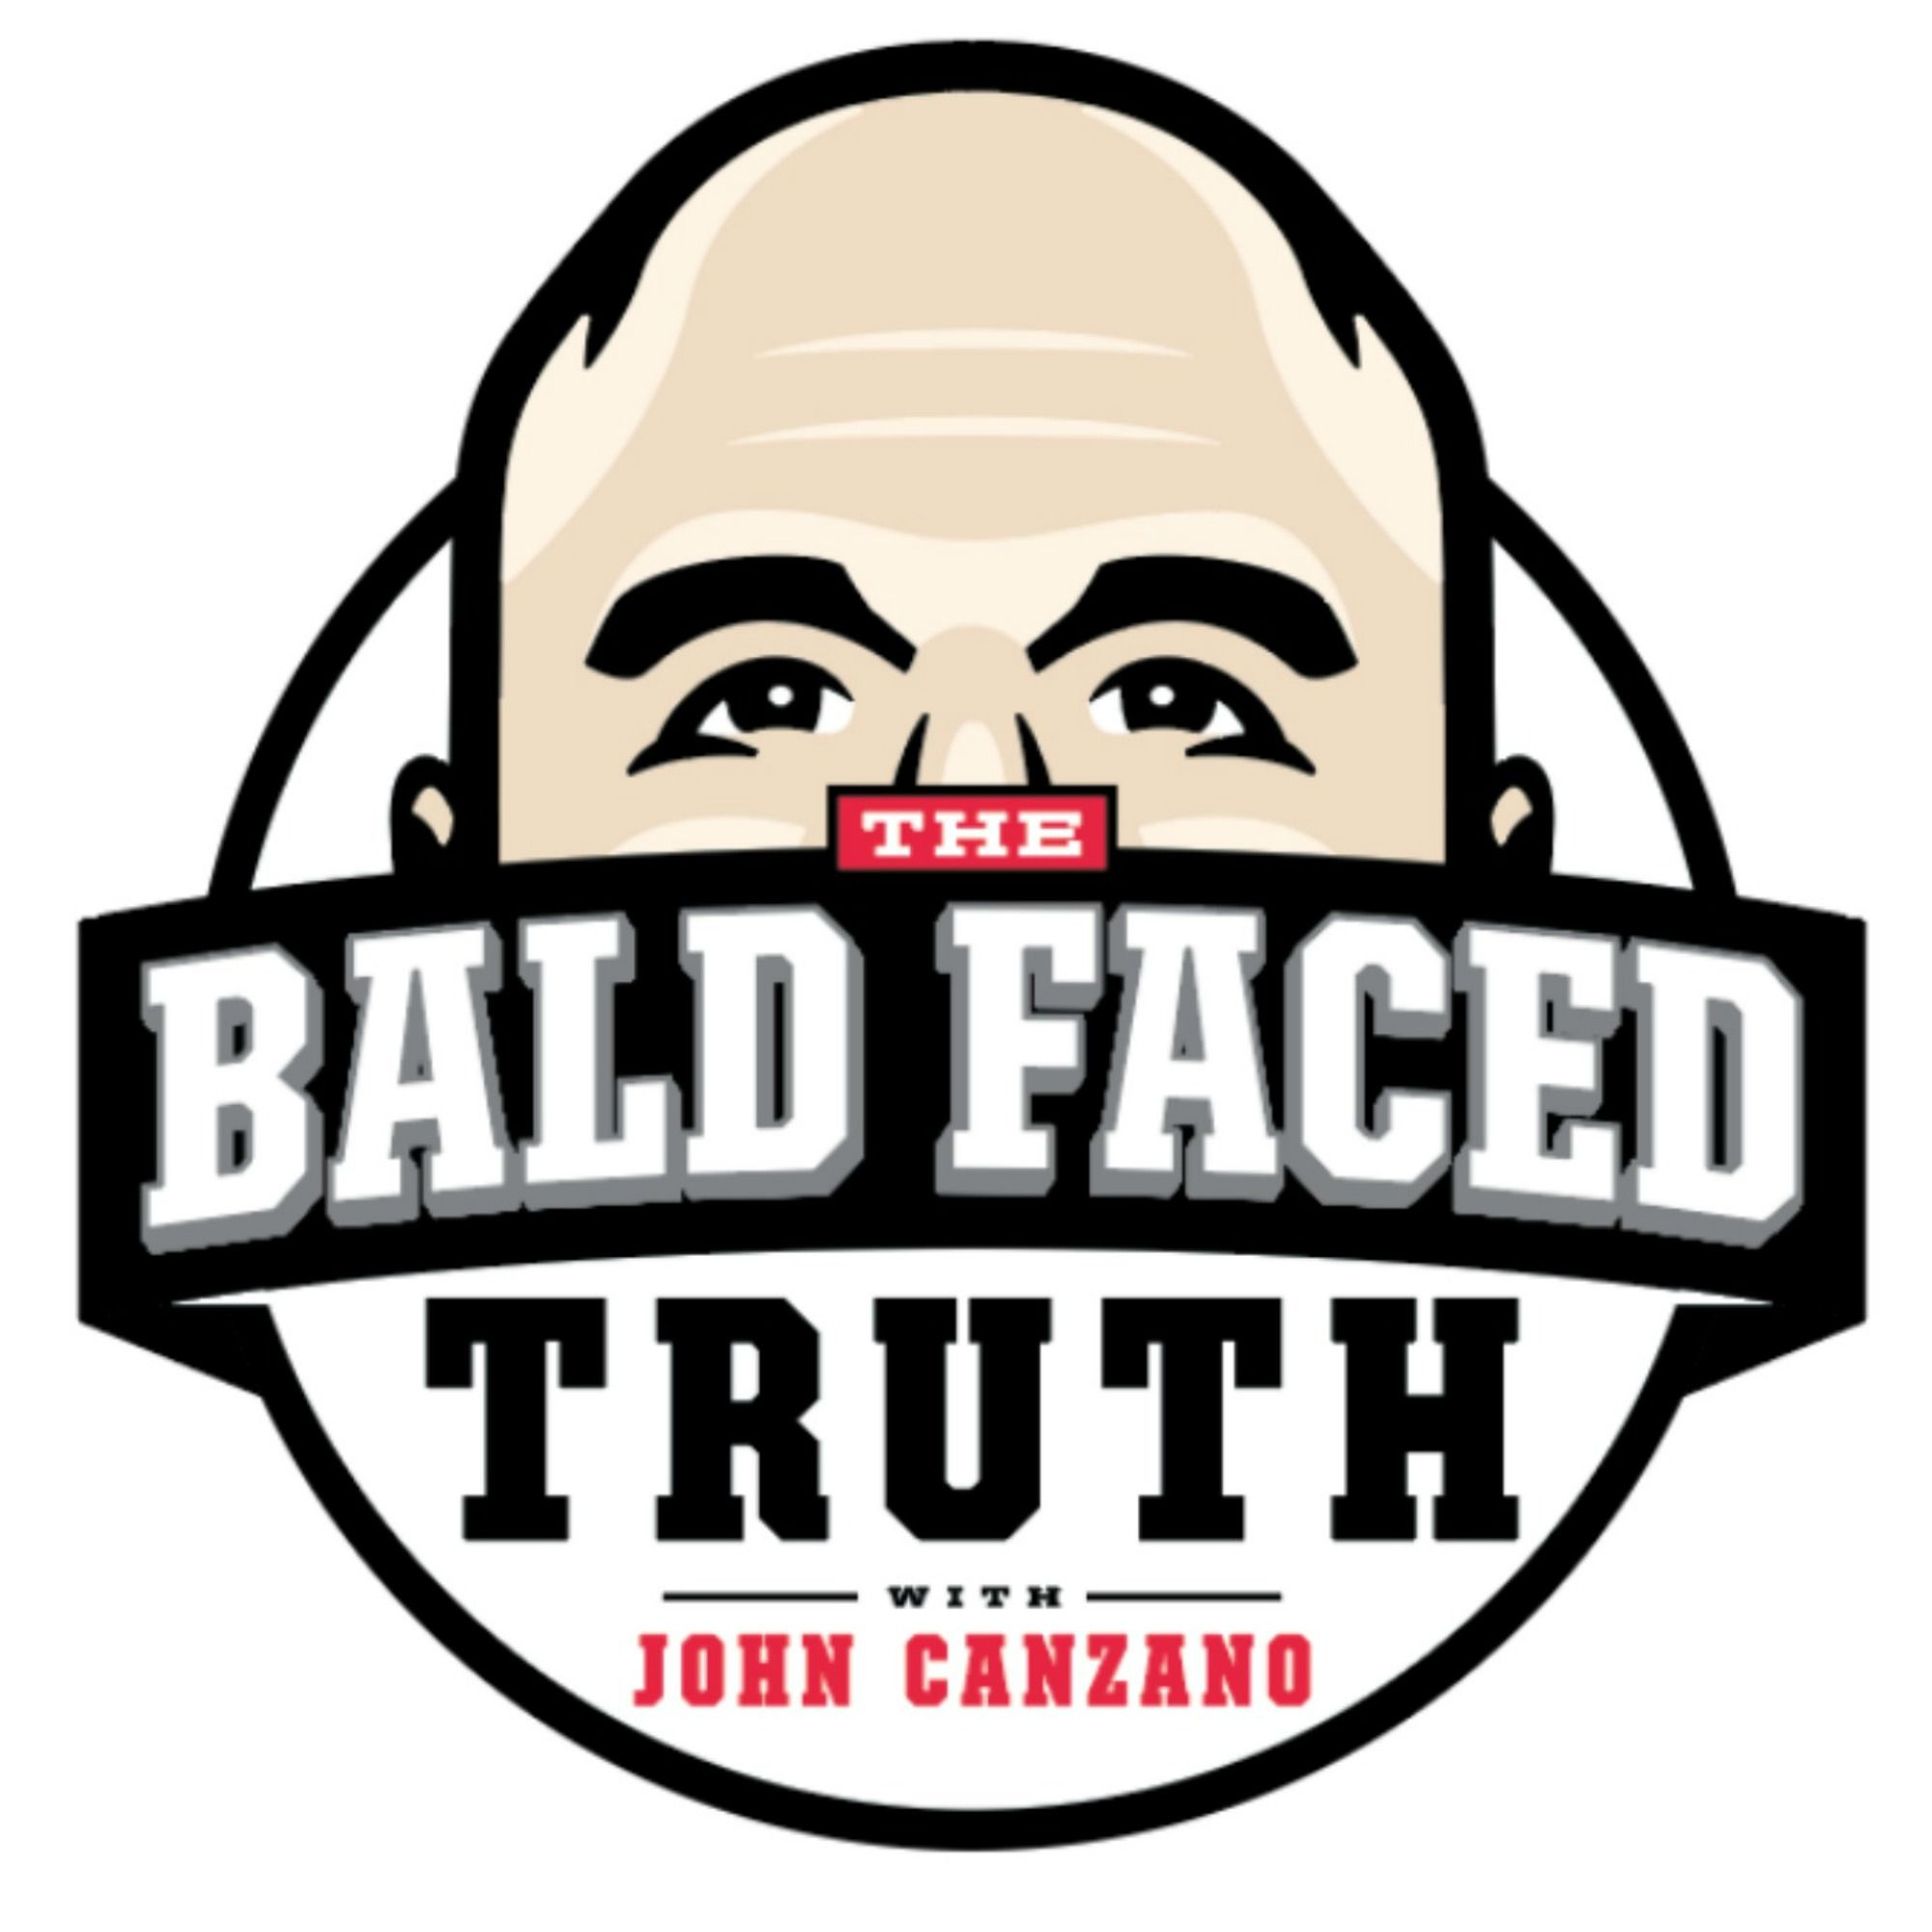 Bald Faced Truth with John Canzano